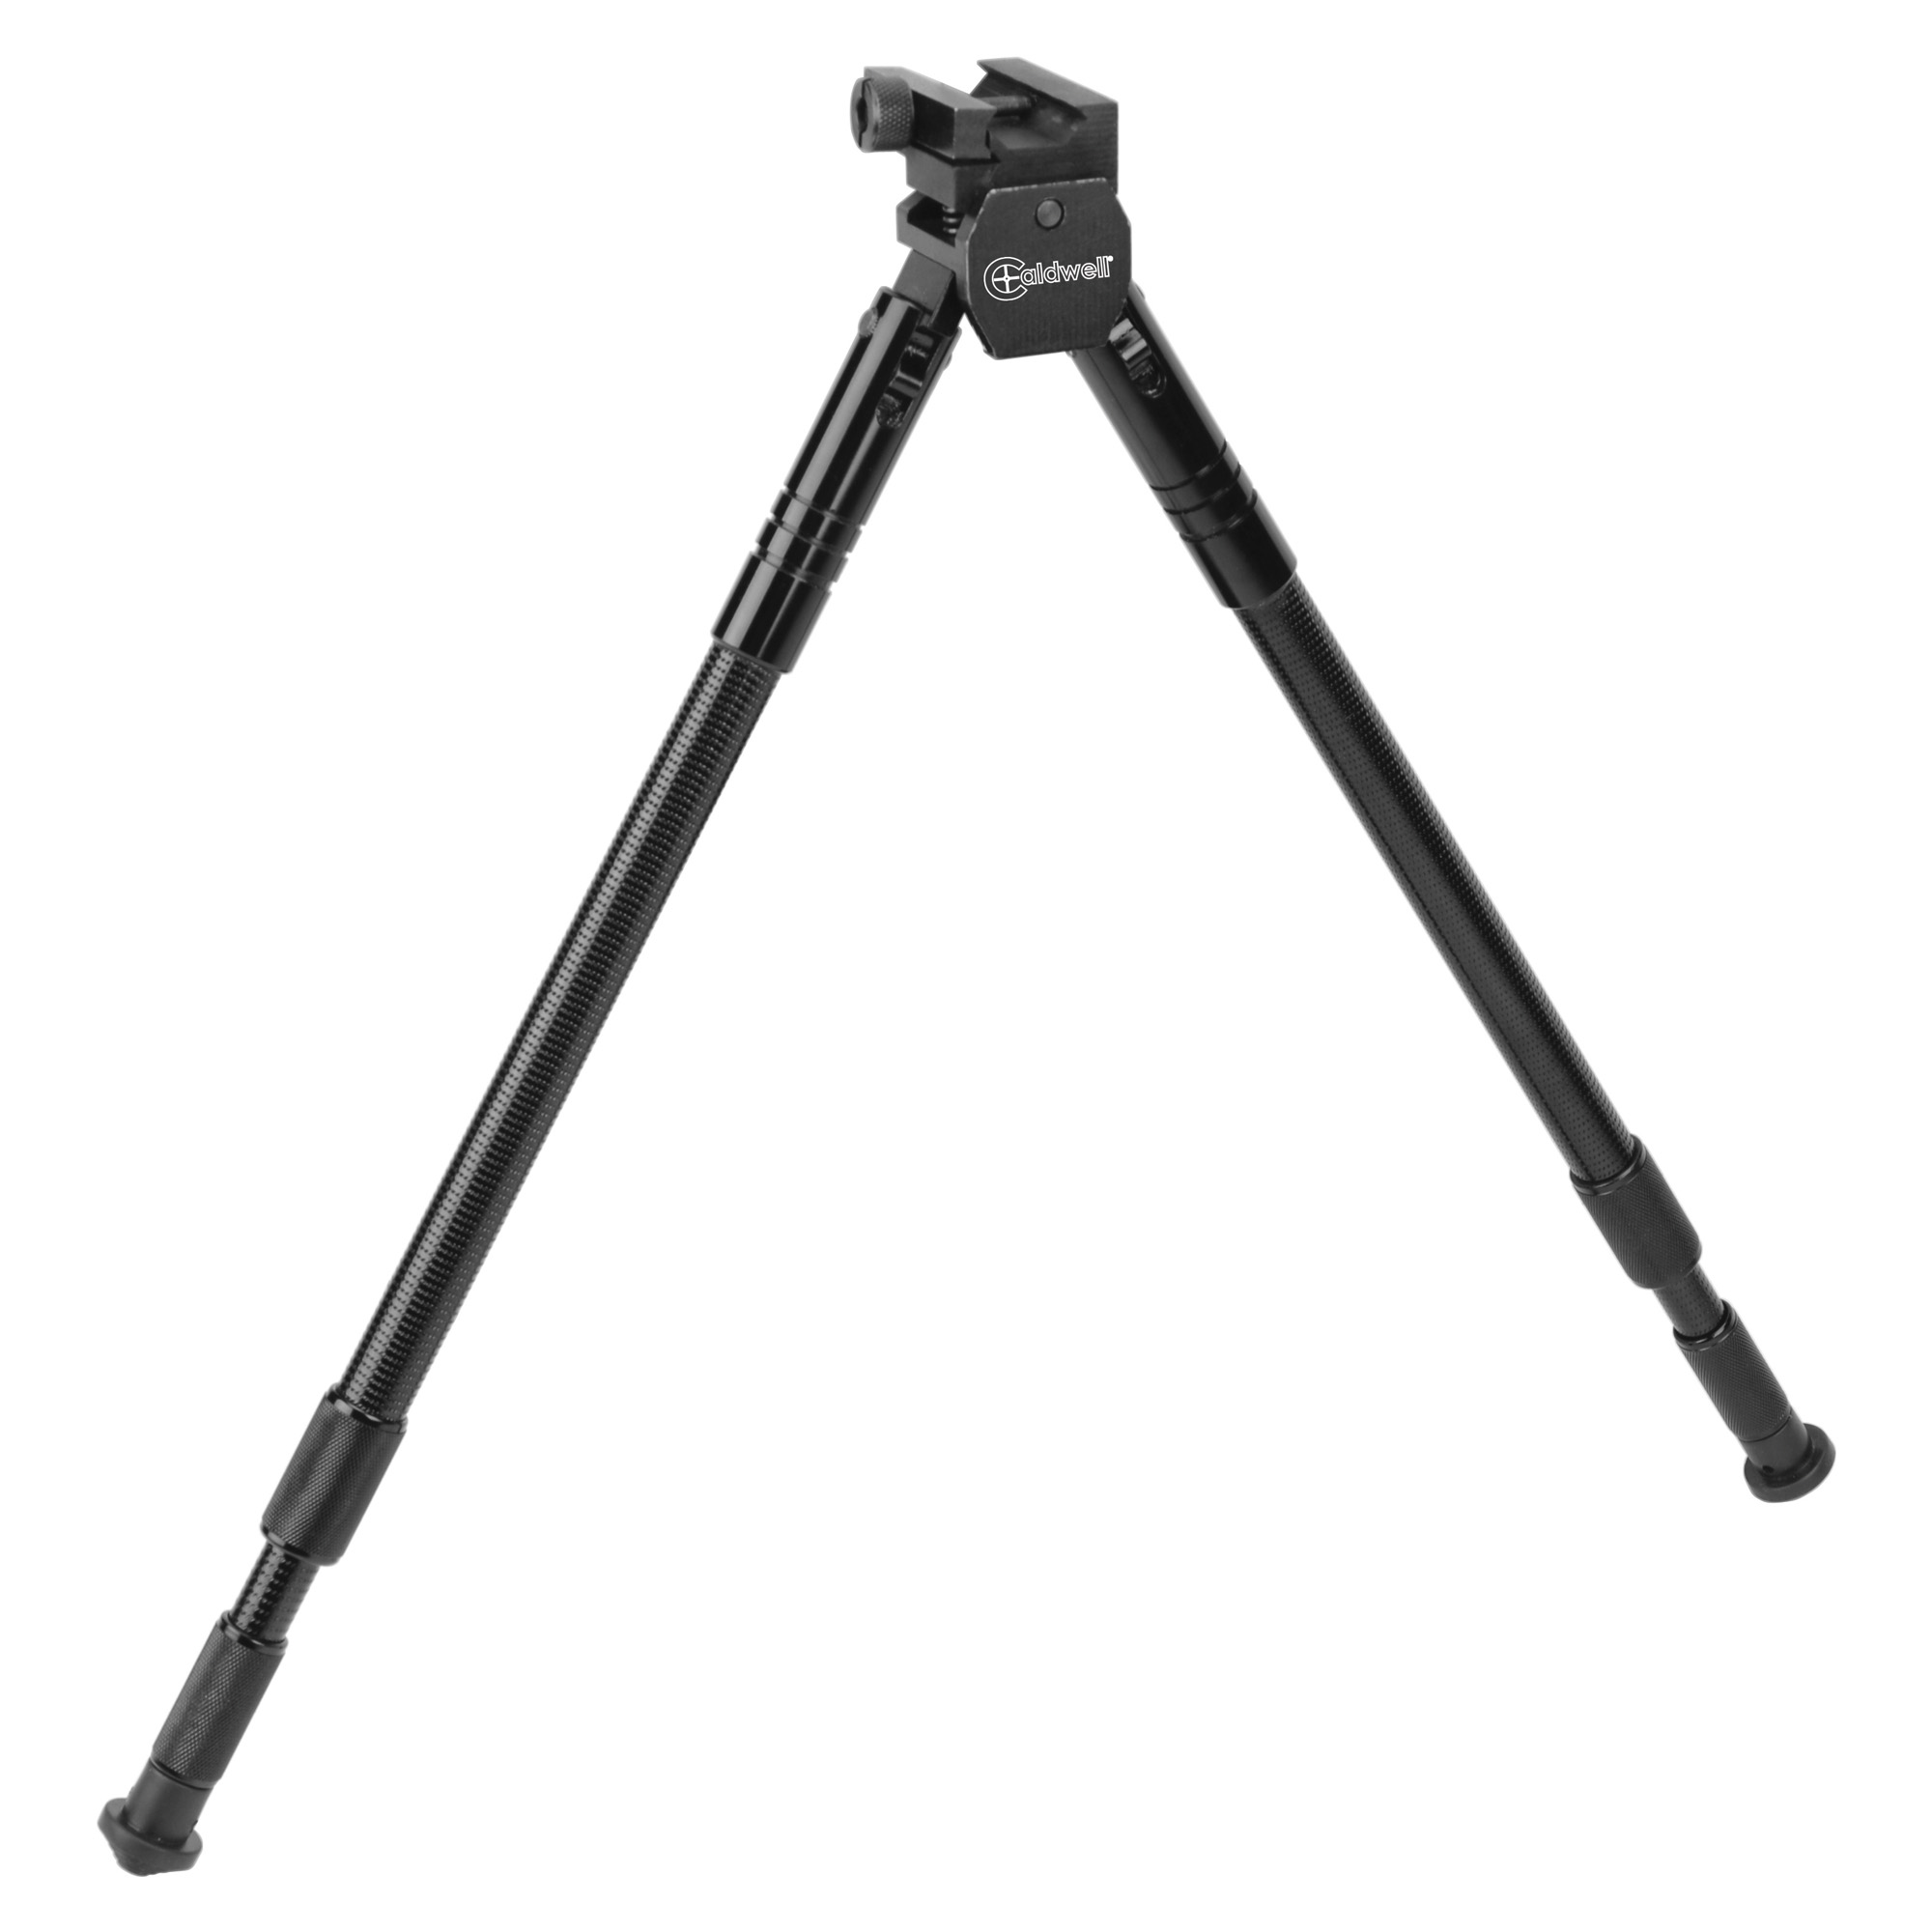 """Caldwell's AR-15 Sitting Bipod 14.5""""-30.5"""" Picatinny Mount is easily attachable and detachable to any Picatinny rail. It features 18 degrees of available cant (tilt) in either direction and rotates left or right 20 degrees"""" without repositioning bipod legs."""